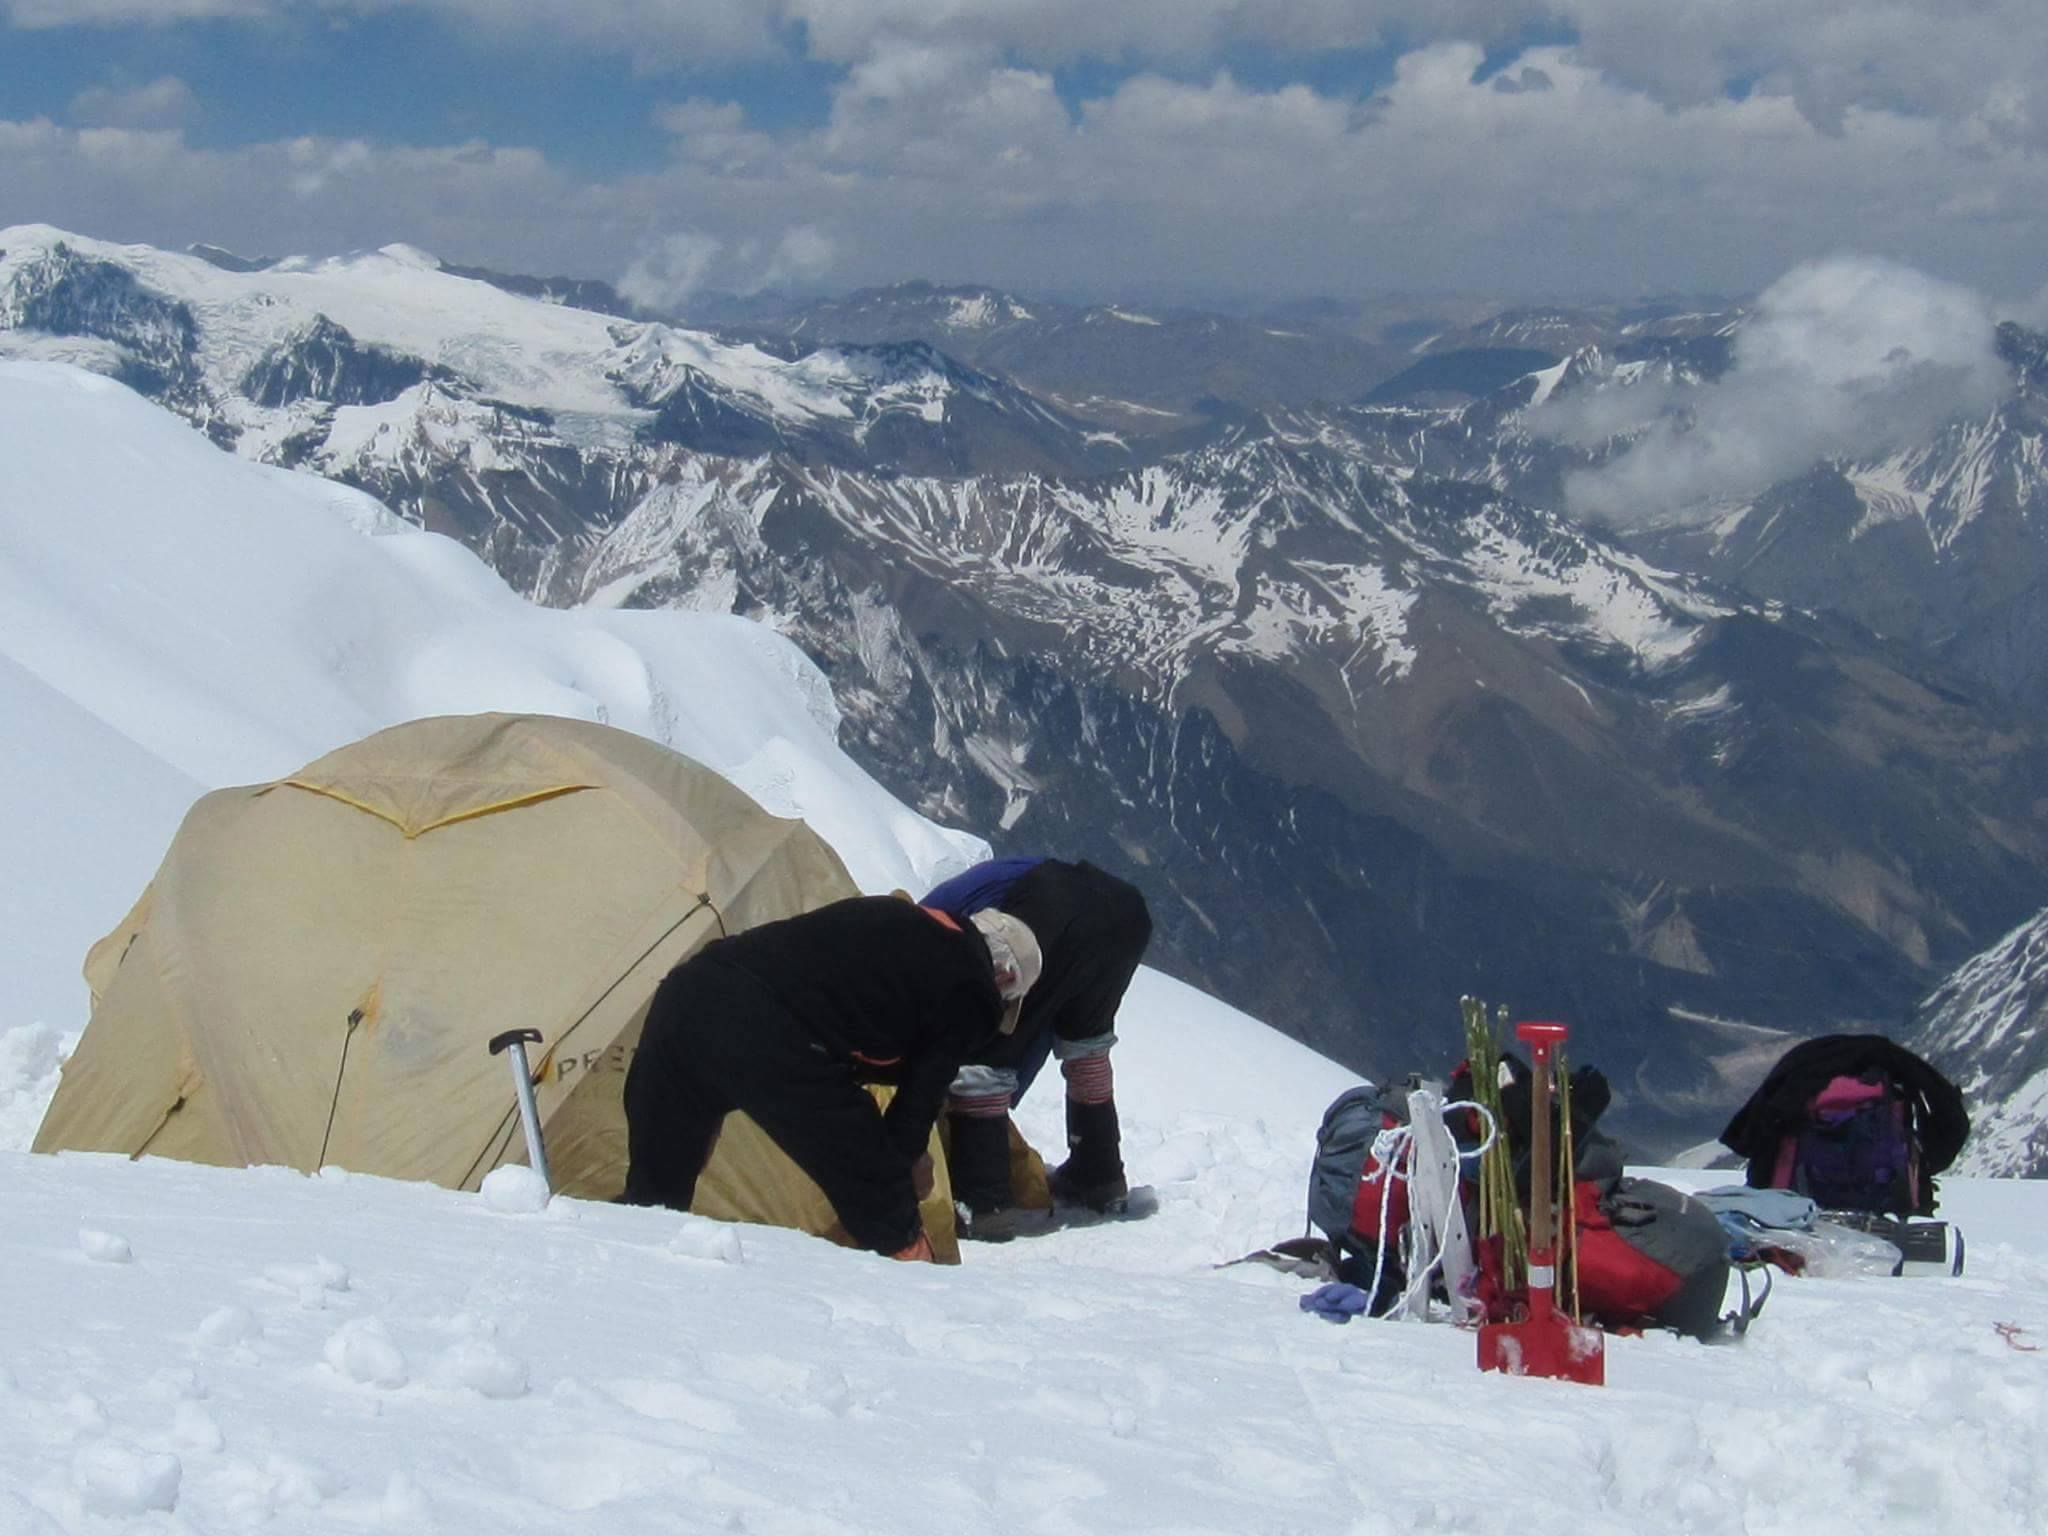 2 trekkers with a tent at the peak of himalayas mountain